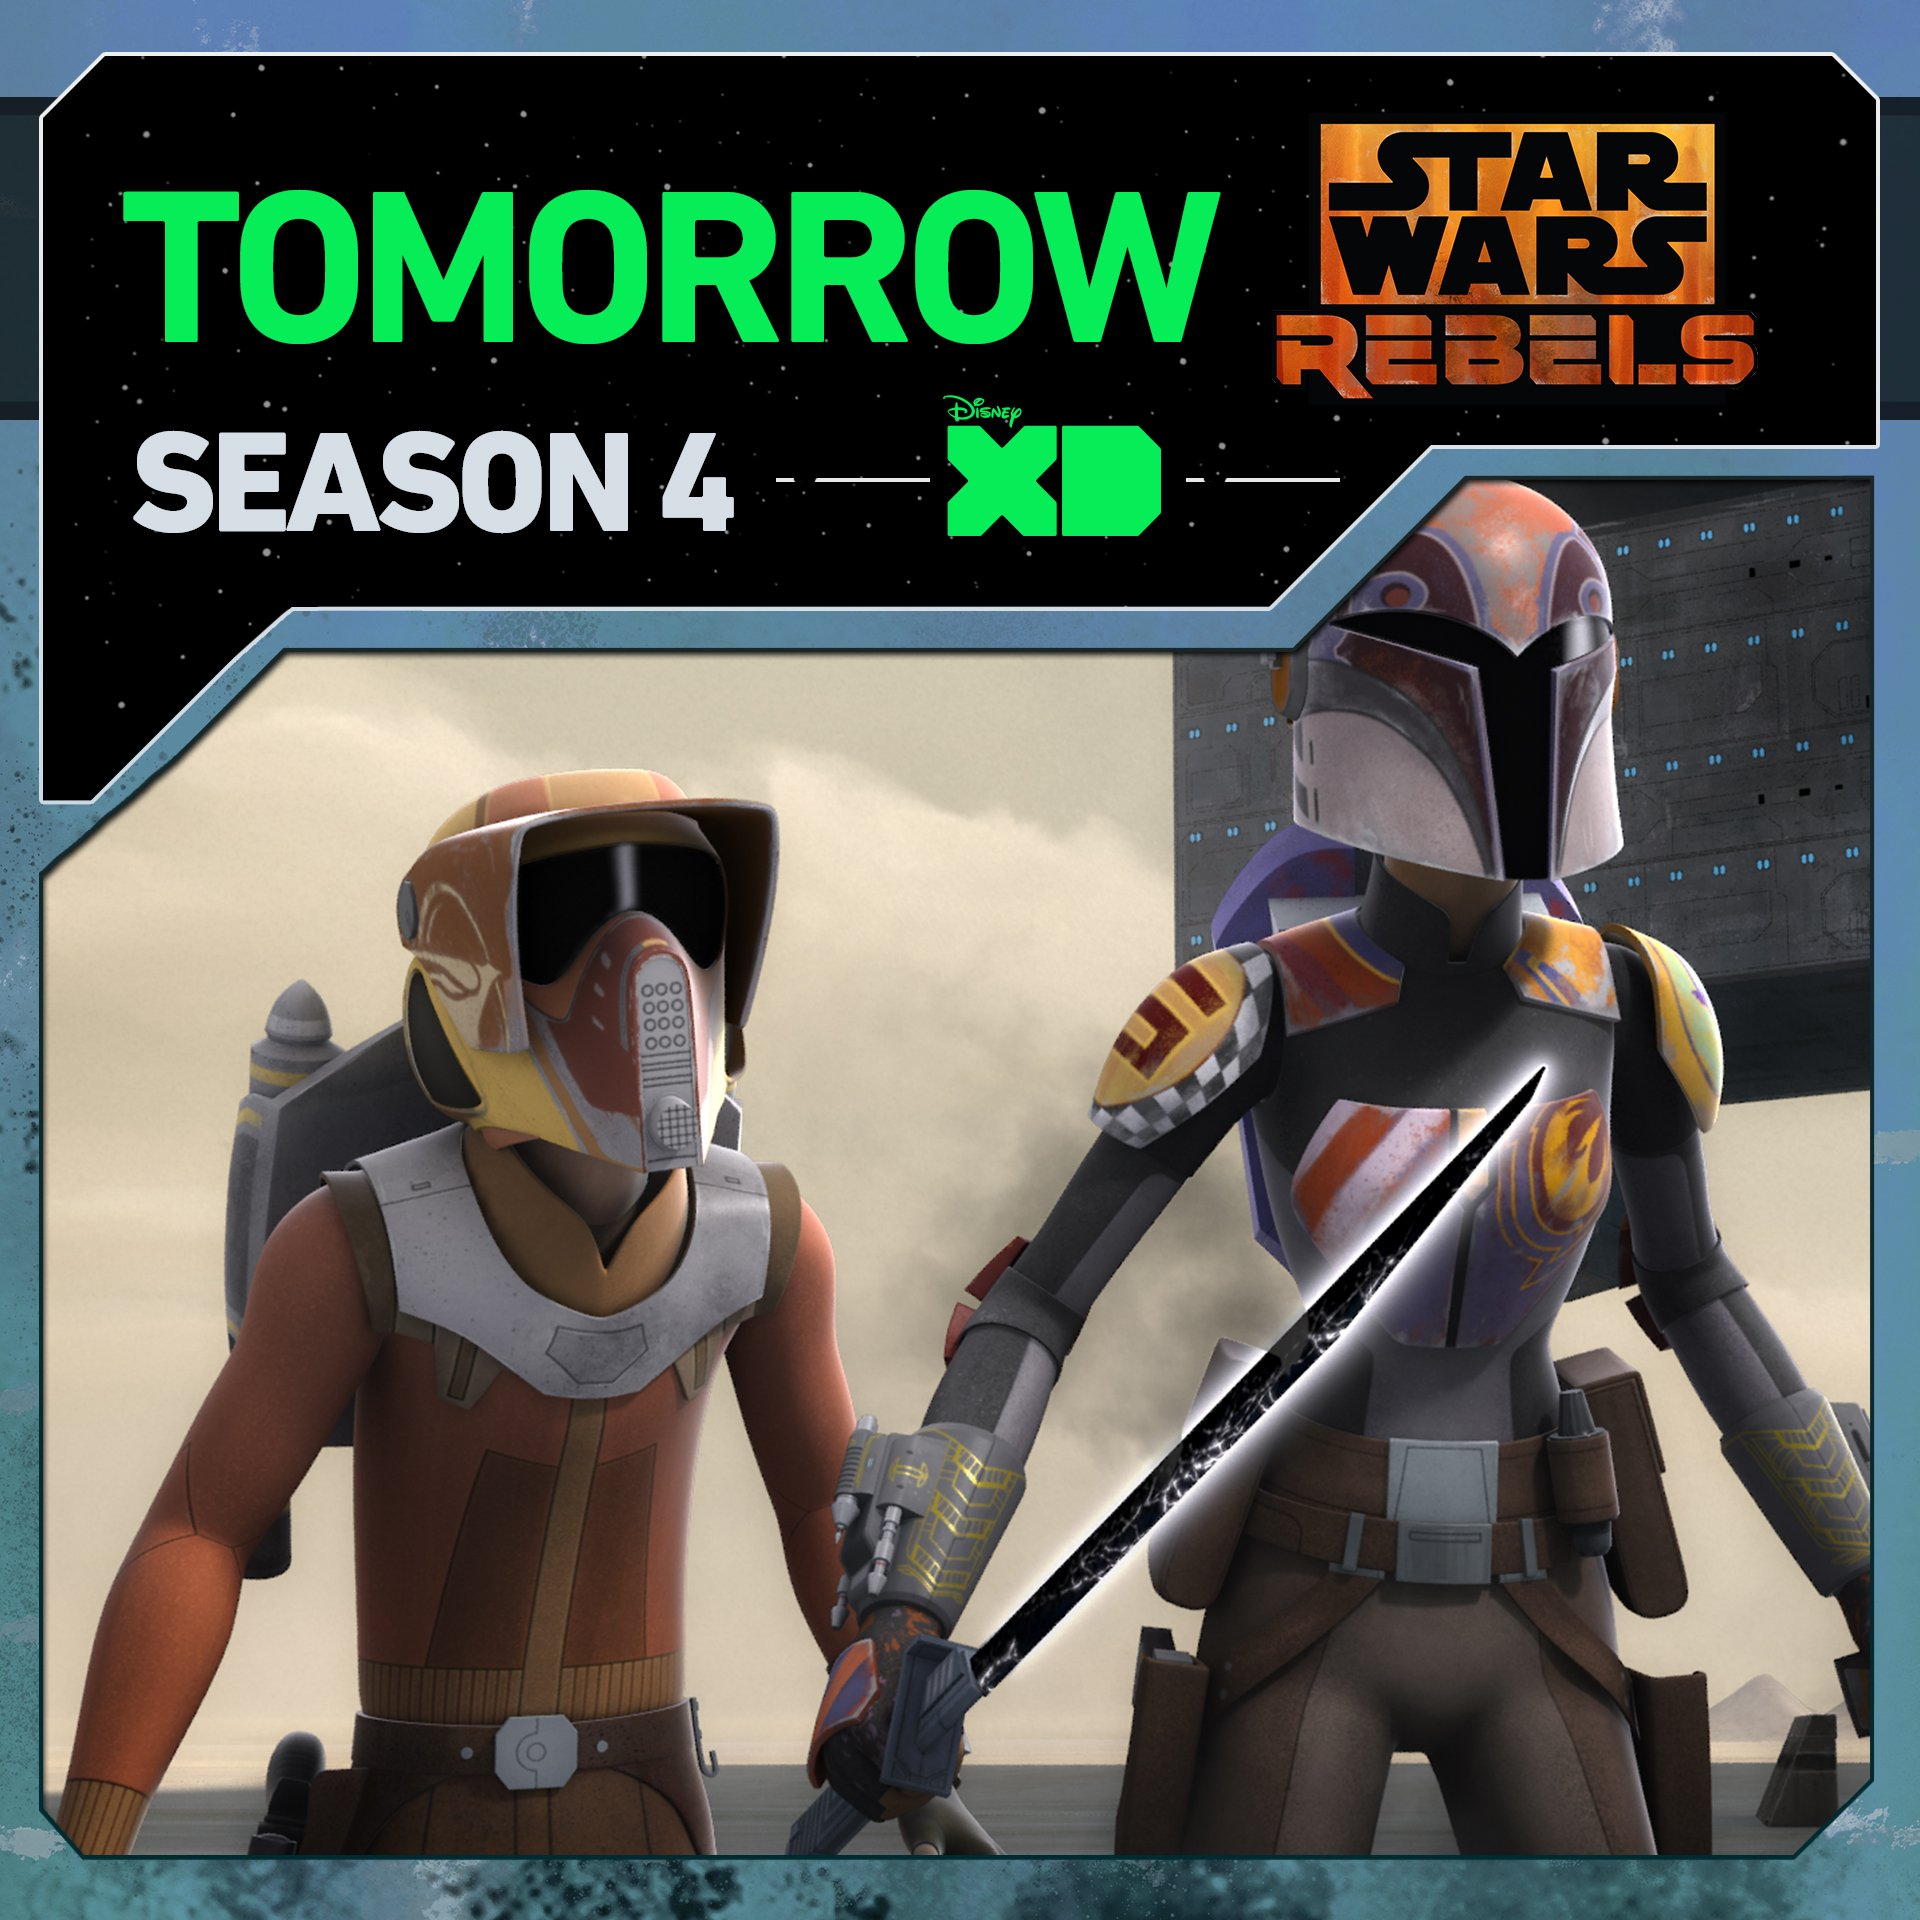 Return to Mandalore with the crew of the Ghost in the season premiere of #StarWarsRebels. https://t.co/9IxEr5SbtA